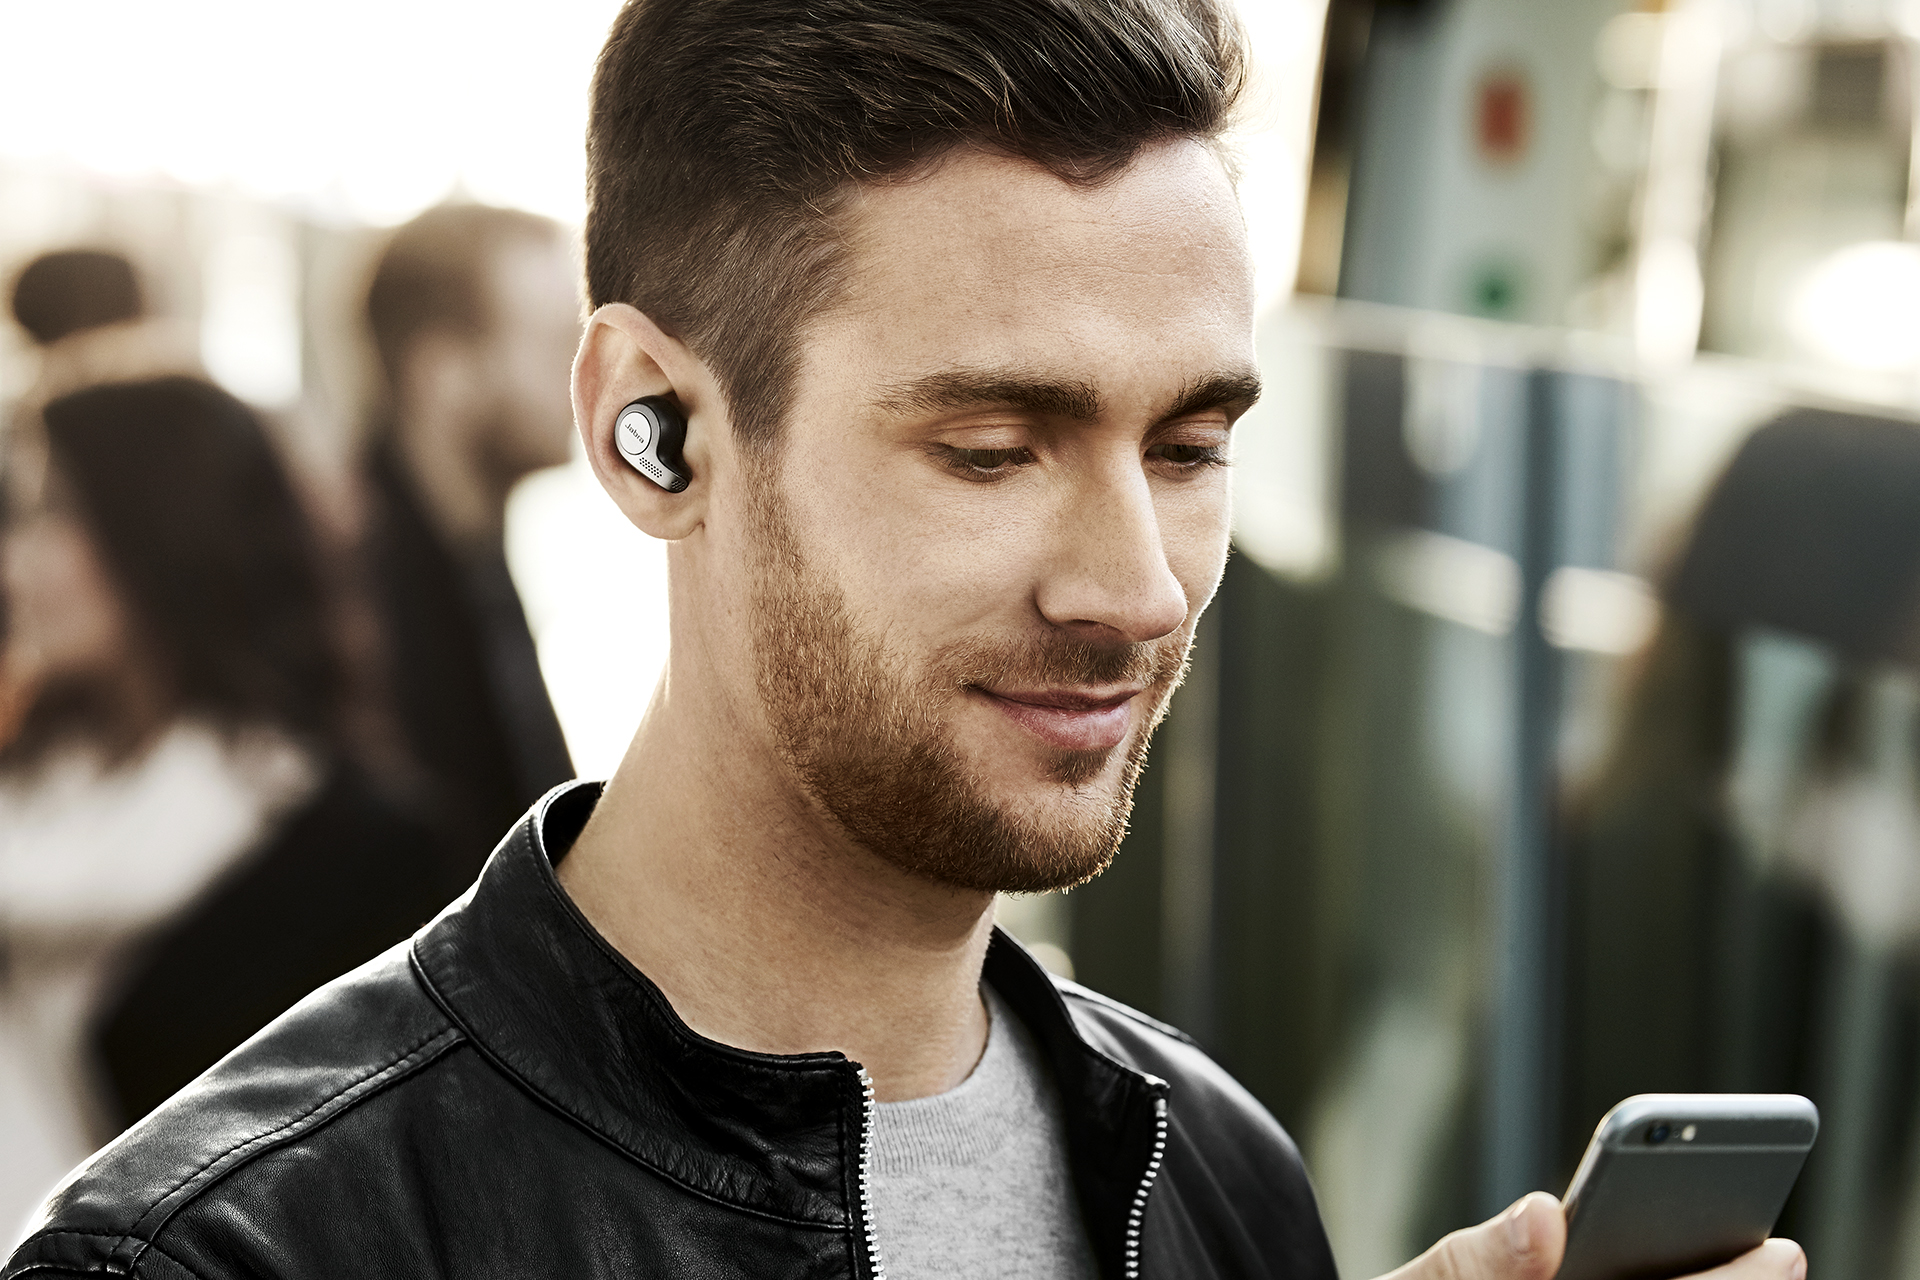 Jabra-Elite-65t-Alexa-Enabled-True-Wireless-Earbuds-with-Charging-Case-NEW thumbnail 5